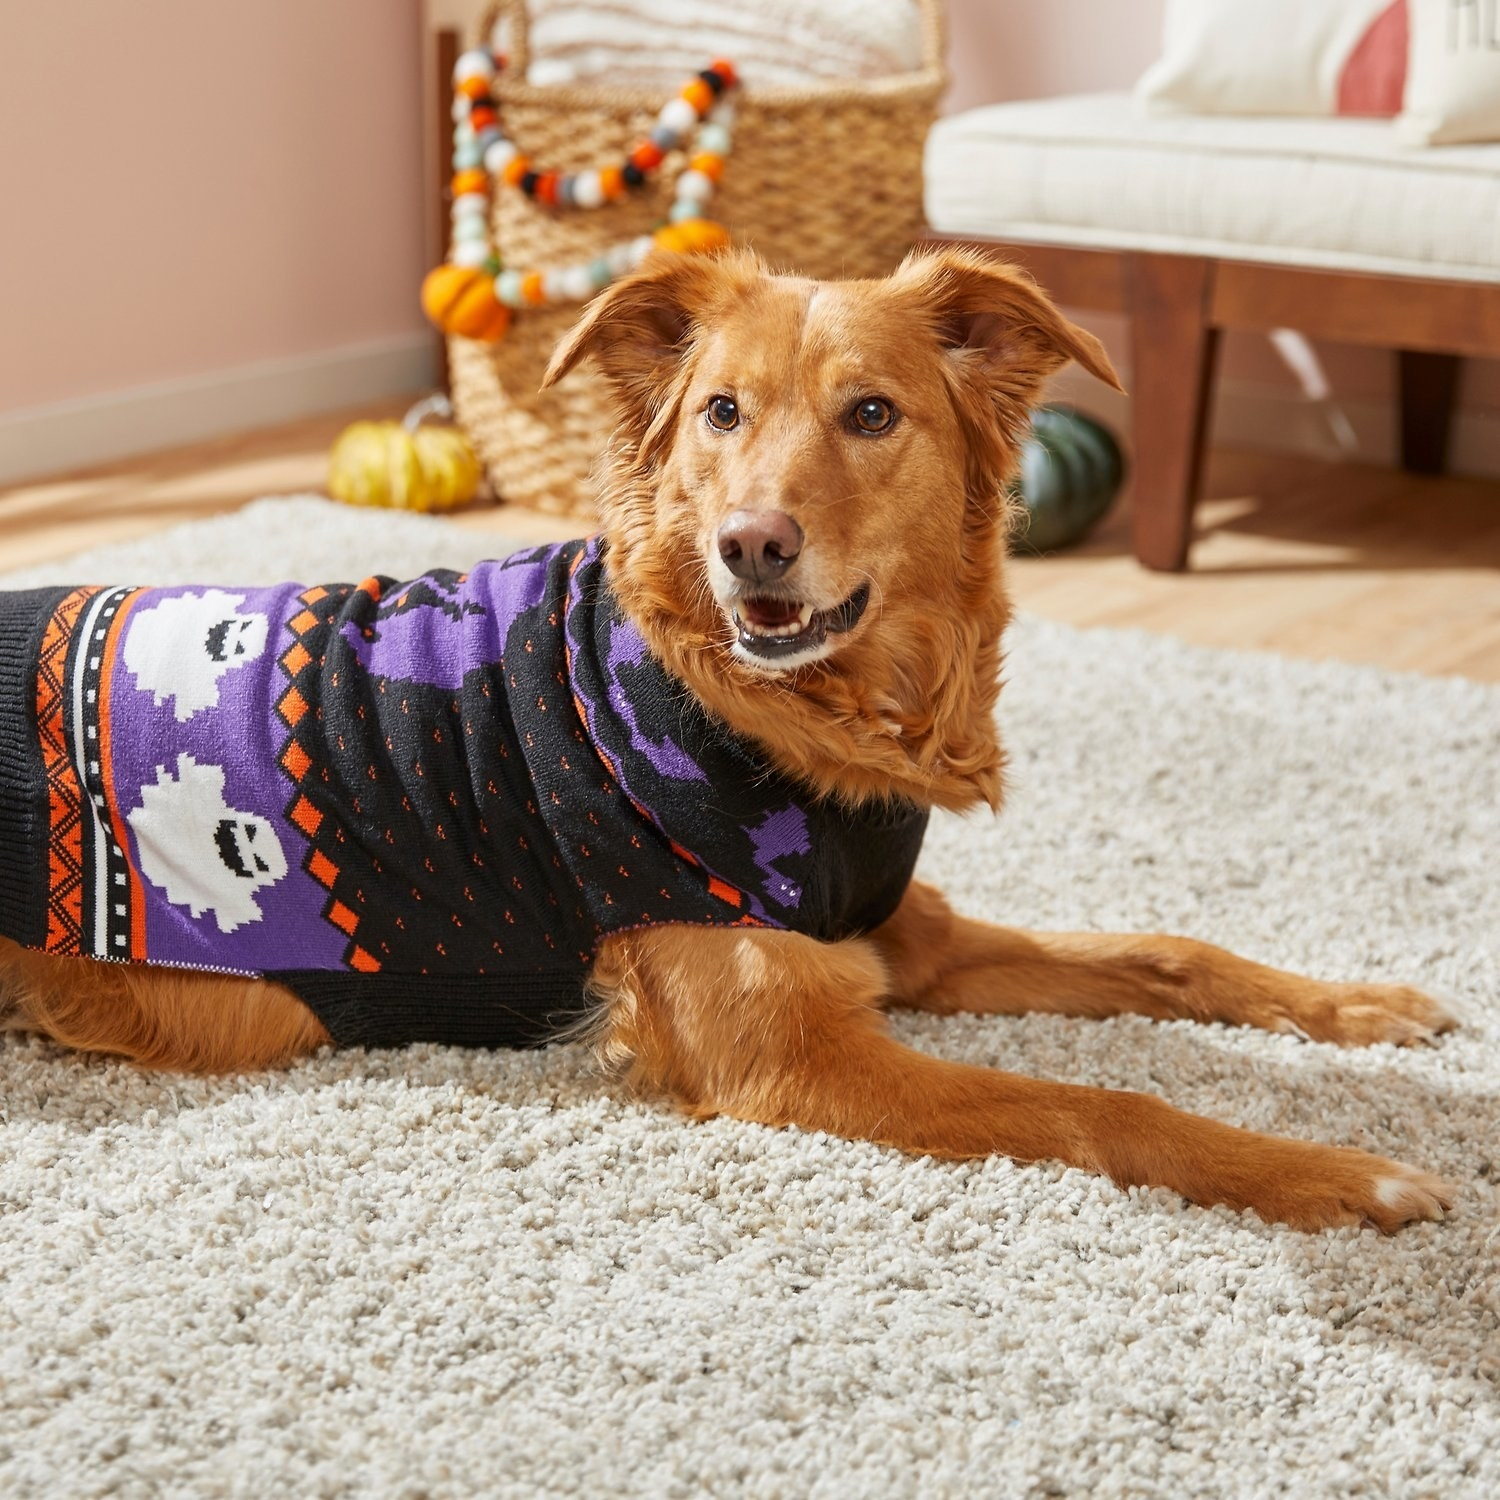 a big dog wearing a black sweater with a purple and orange design and ghosts across it